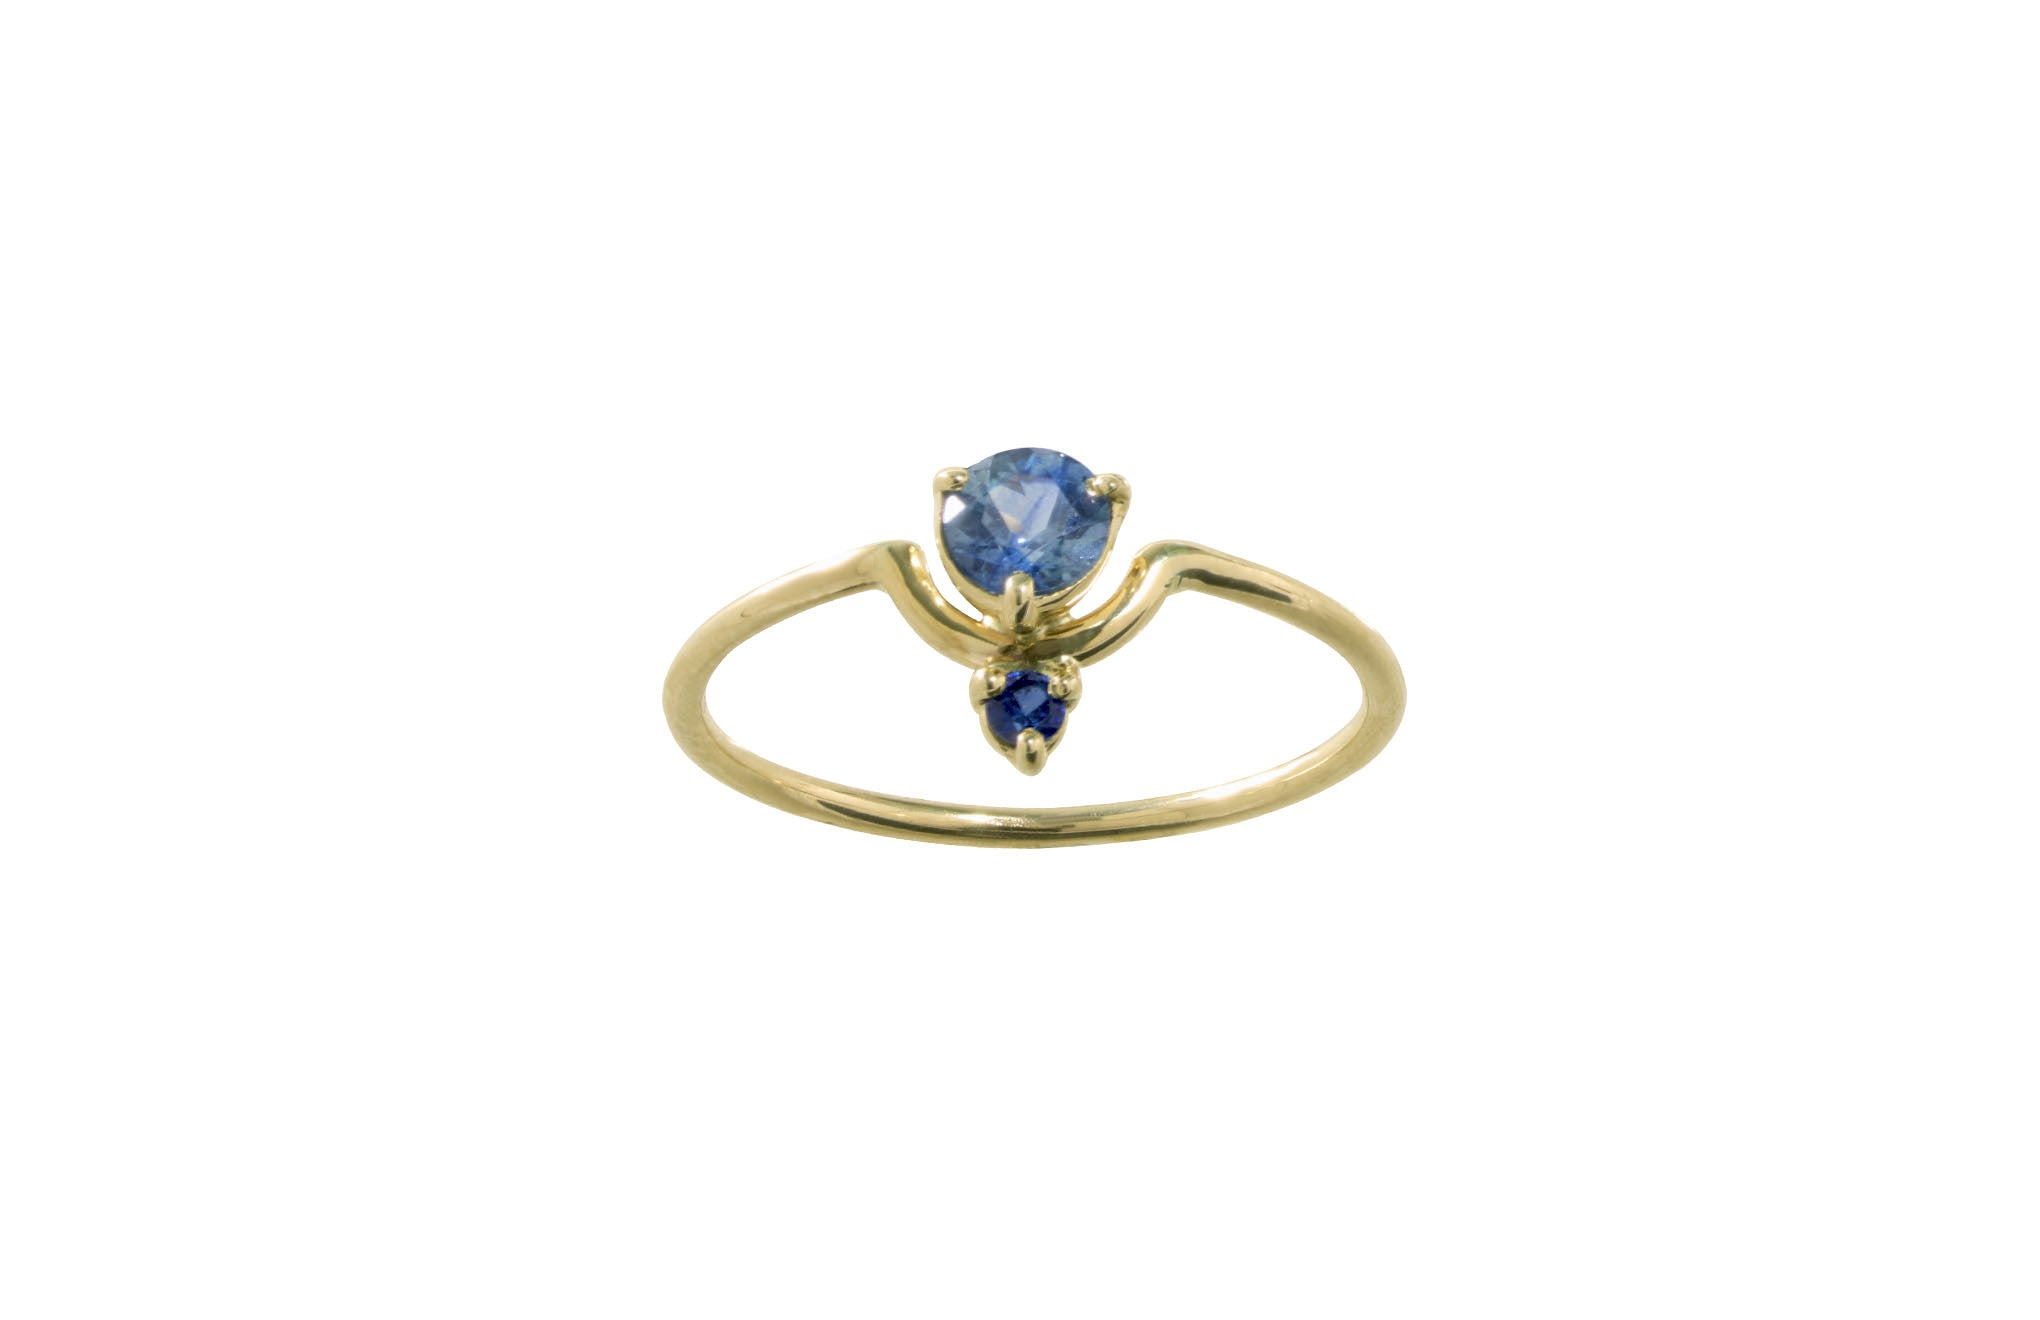 jewelry carats diamond master ring dark at id sapphire blue certified gold stone rings for j gia three sale engagement